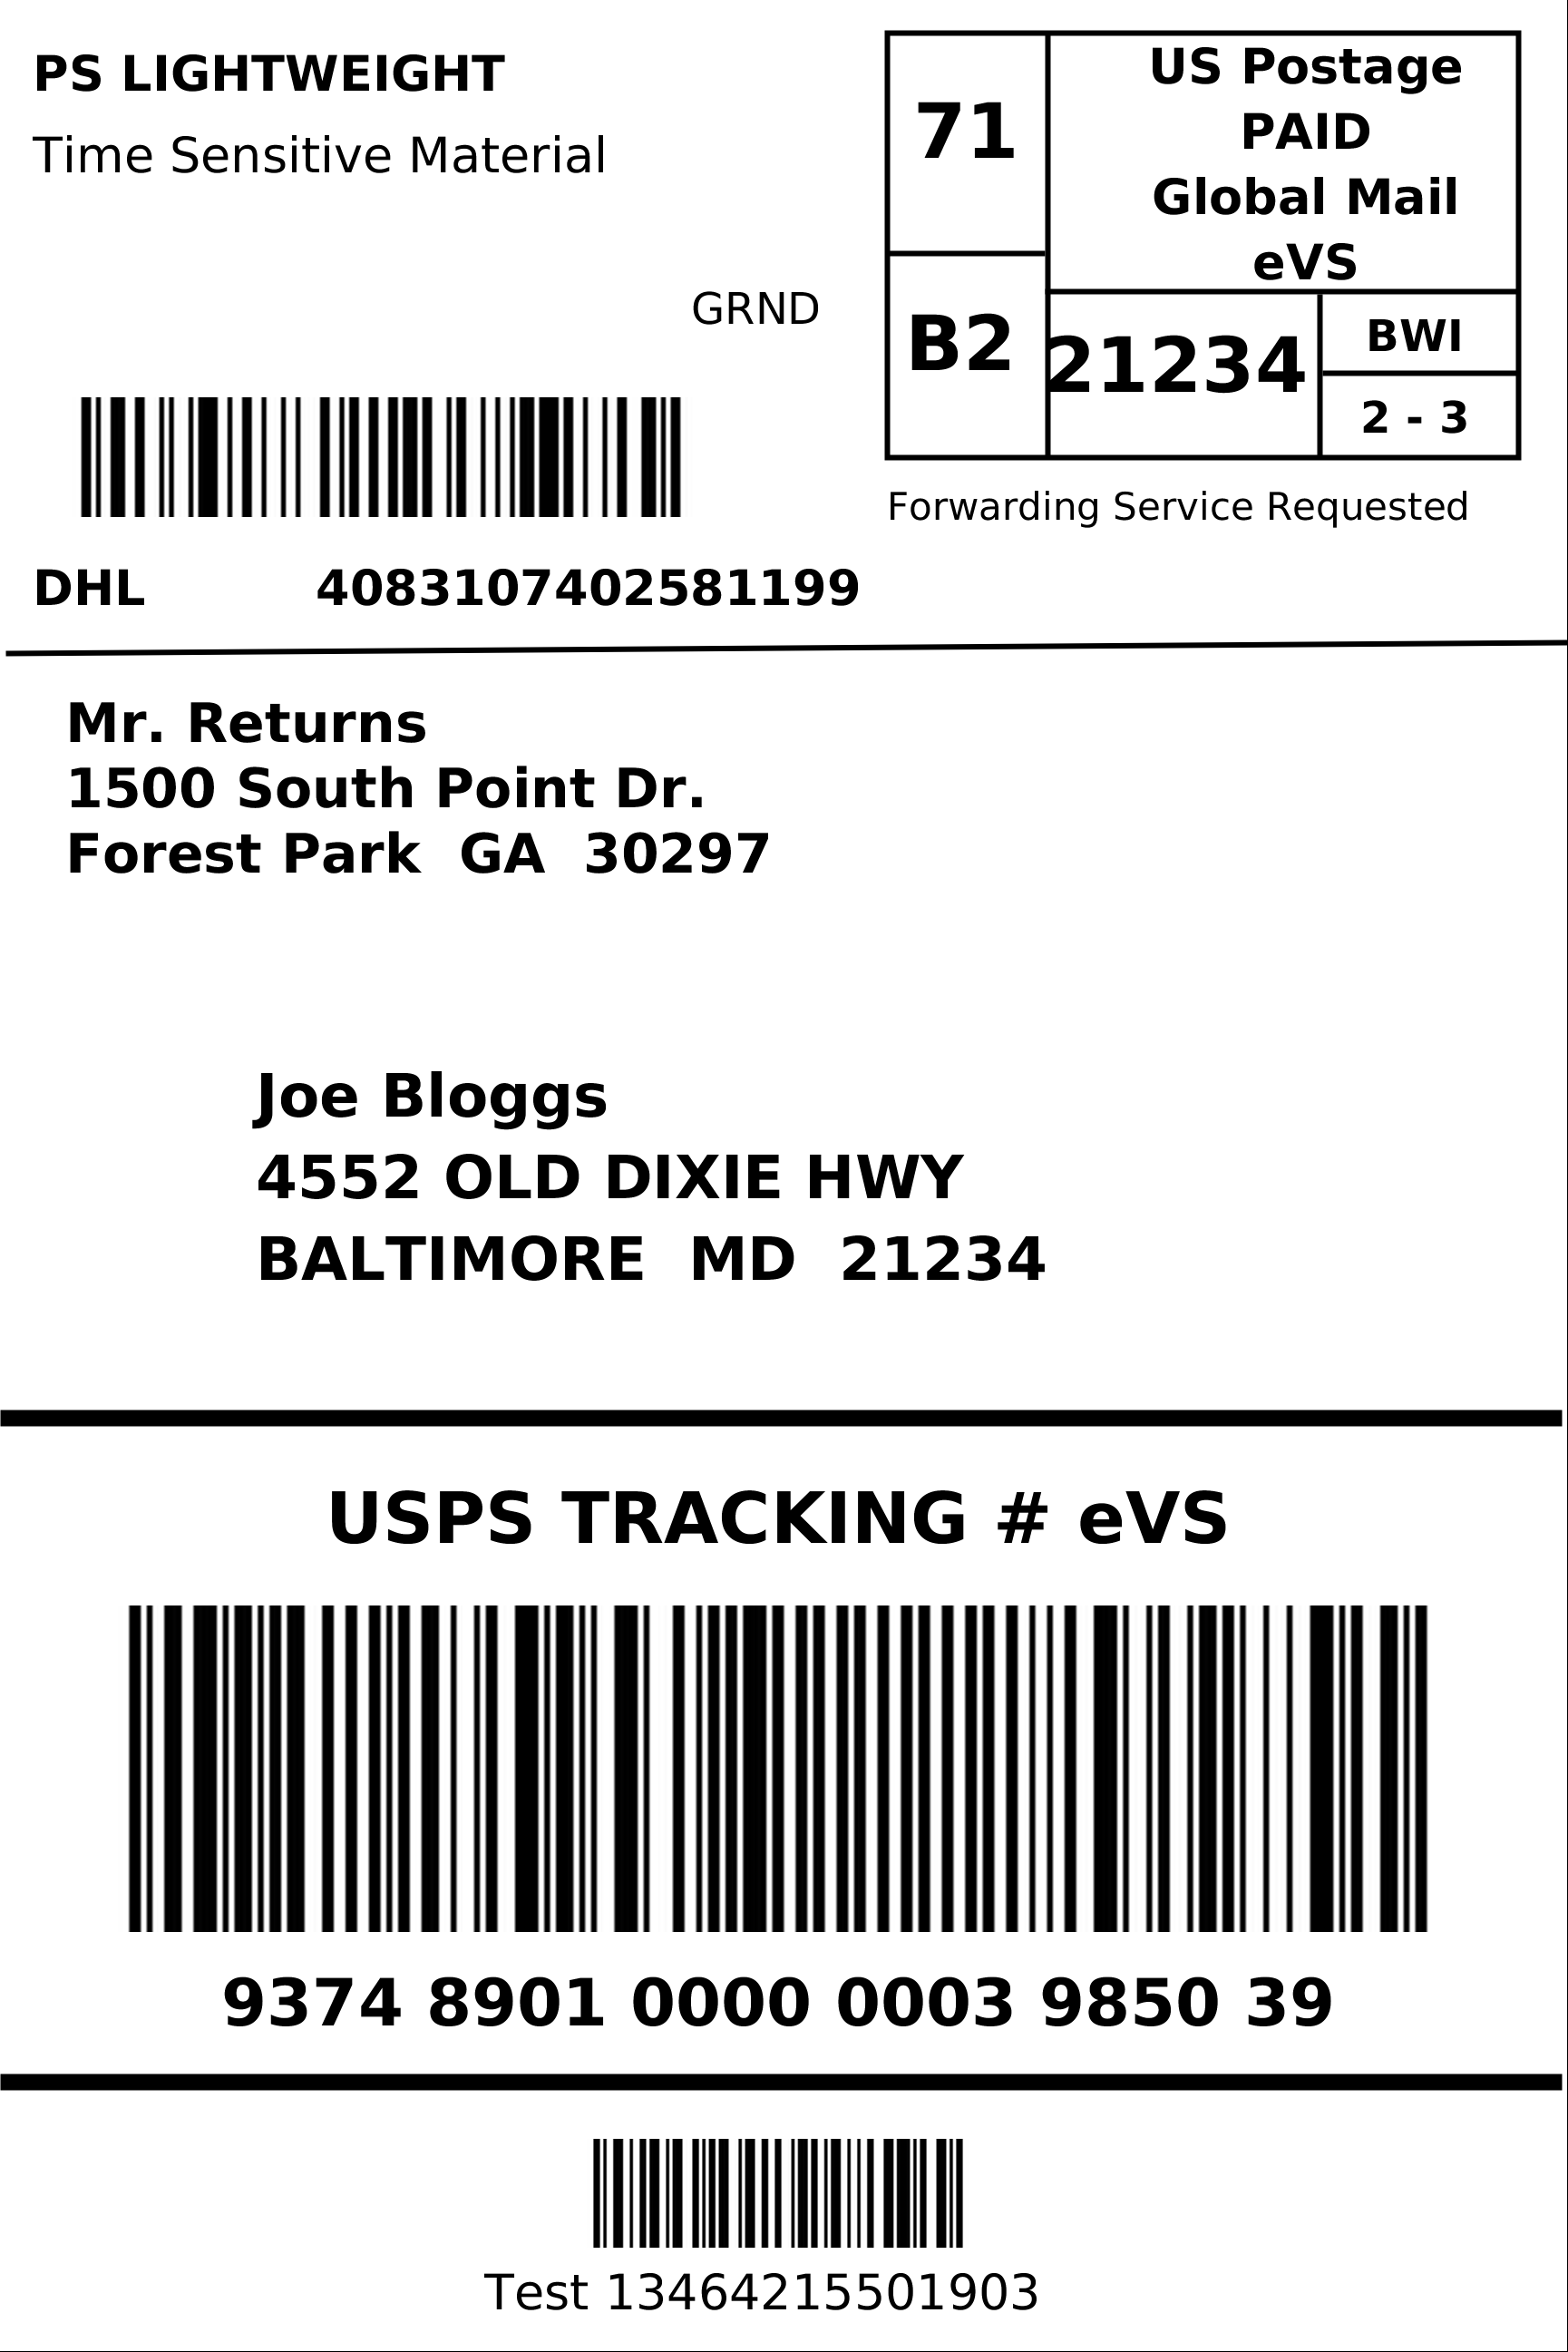 DHL eCommerce Generate a Shipping Label – Shipping Label Format